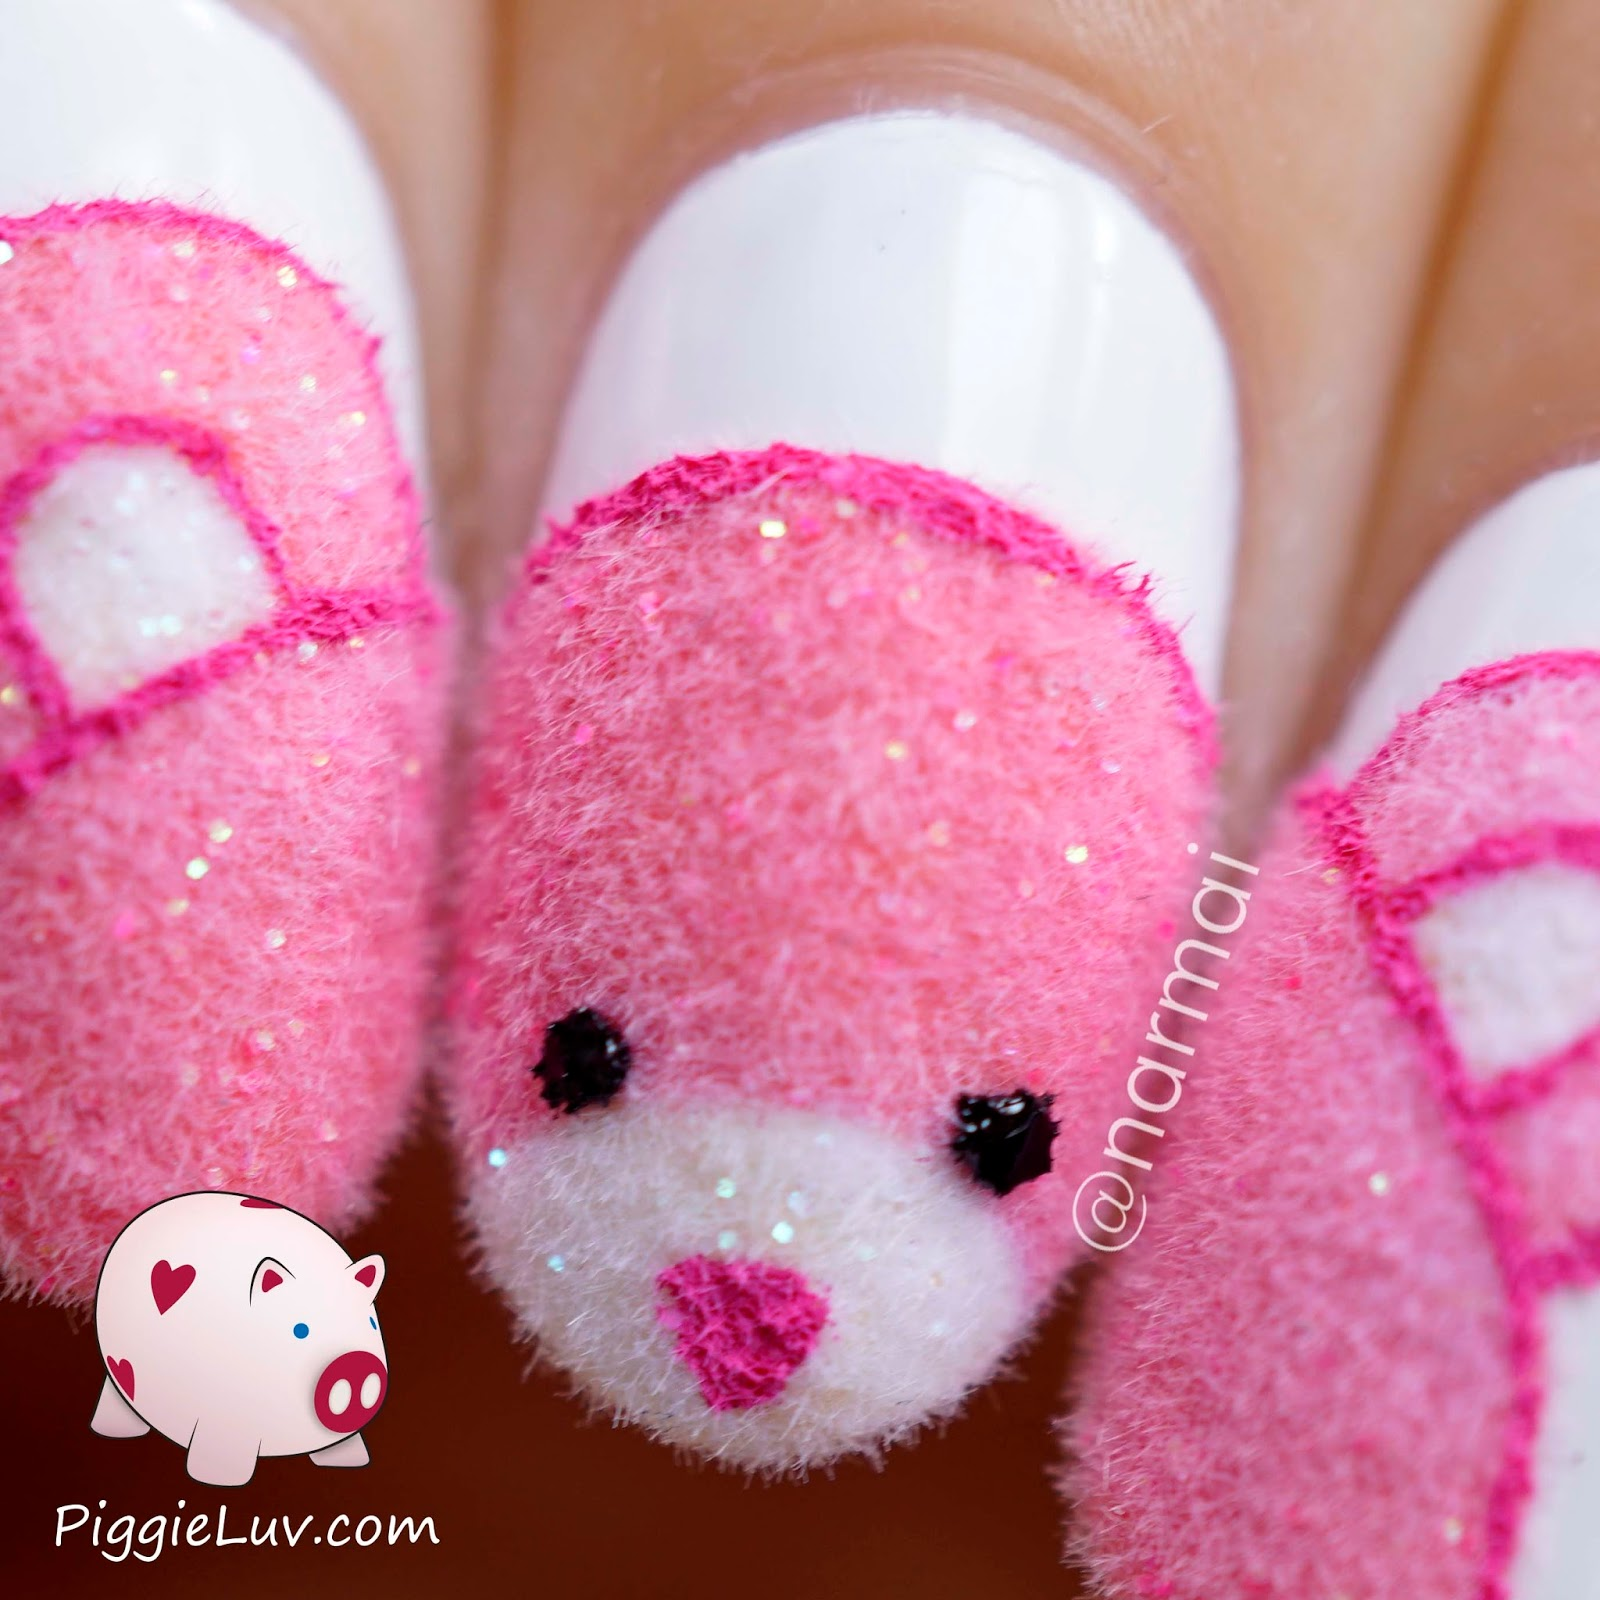 Piggieluv fuzzy pink teddy bear nail art i got my flocking powder from a dutch online craft shop called mini mils but sadly it no longer exists you can find flocking powder at craft stores nail prinsesfo Gallery